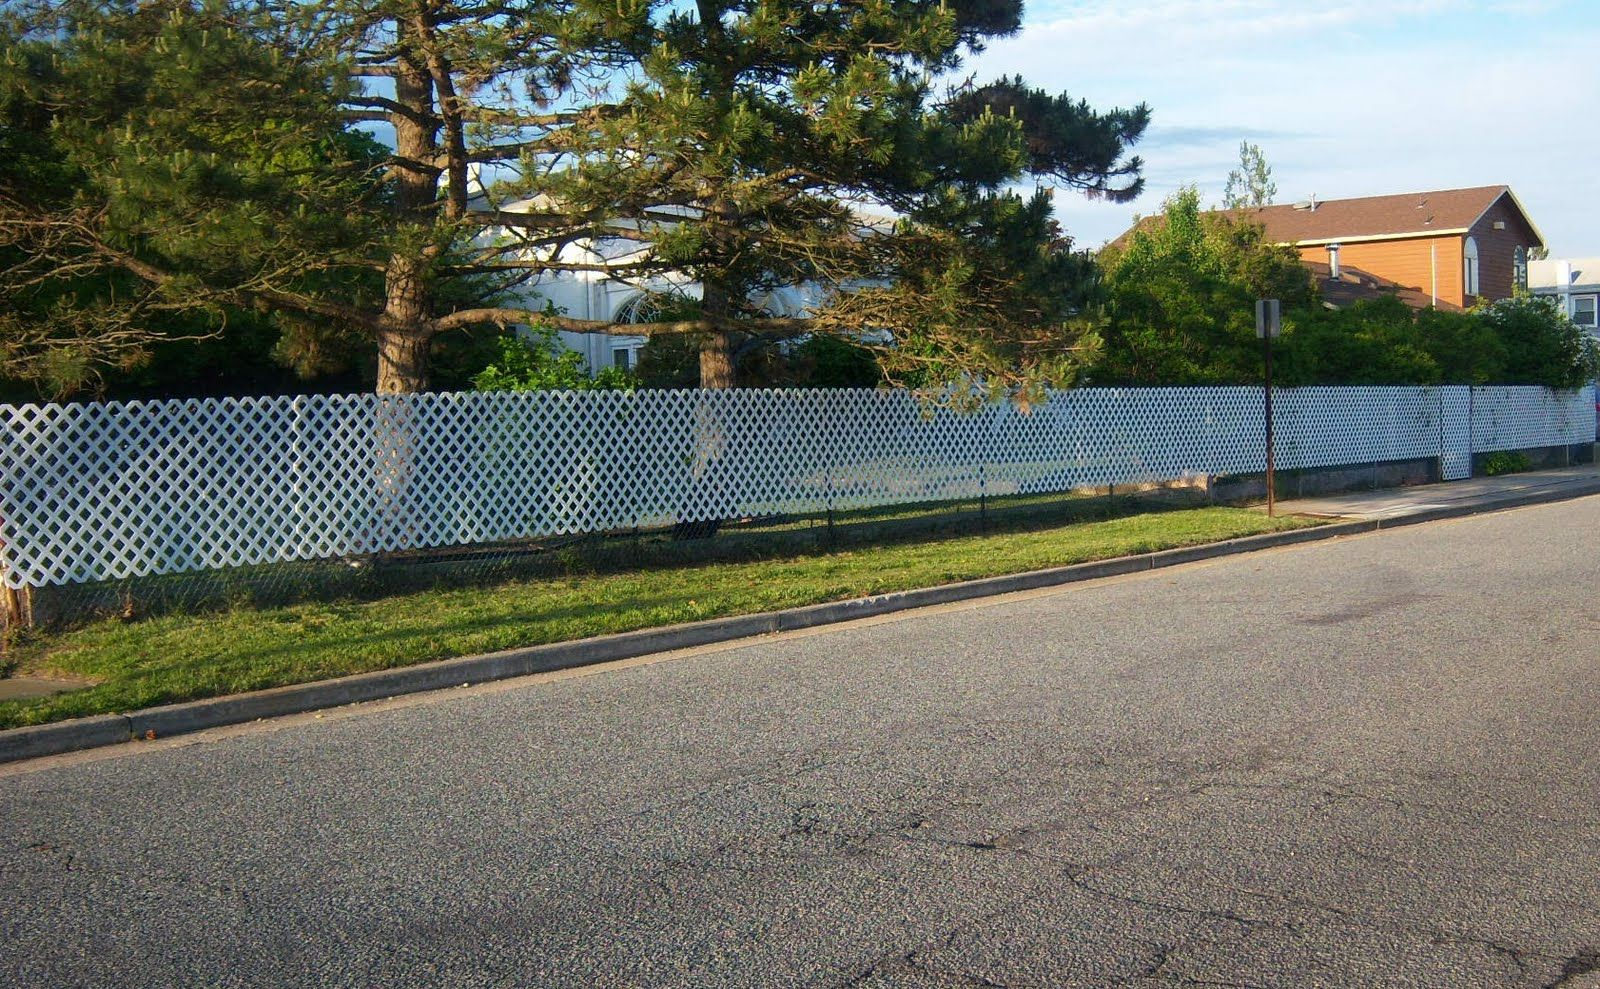 White plastic lattice on chain link fence install vinyl lattice install vinyl lattice over chain link fence for appearance and privacy baanklon Choice Image